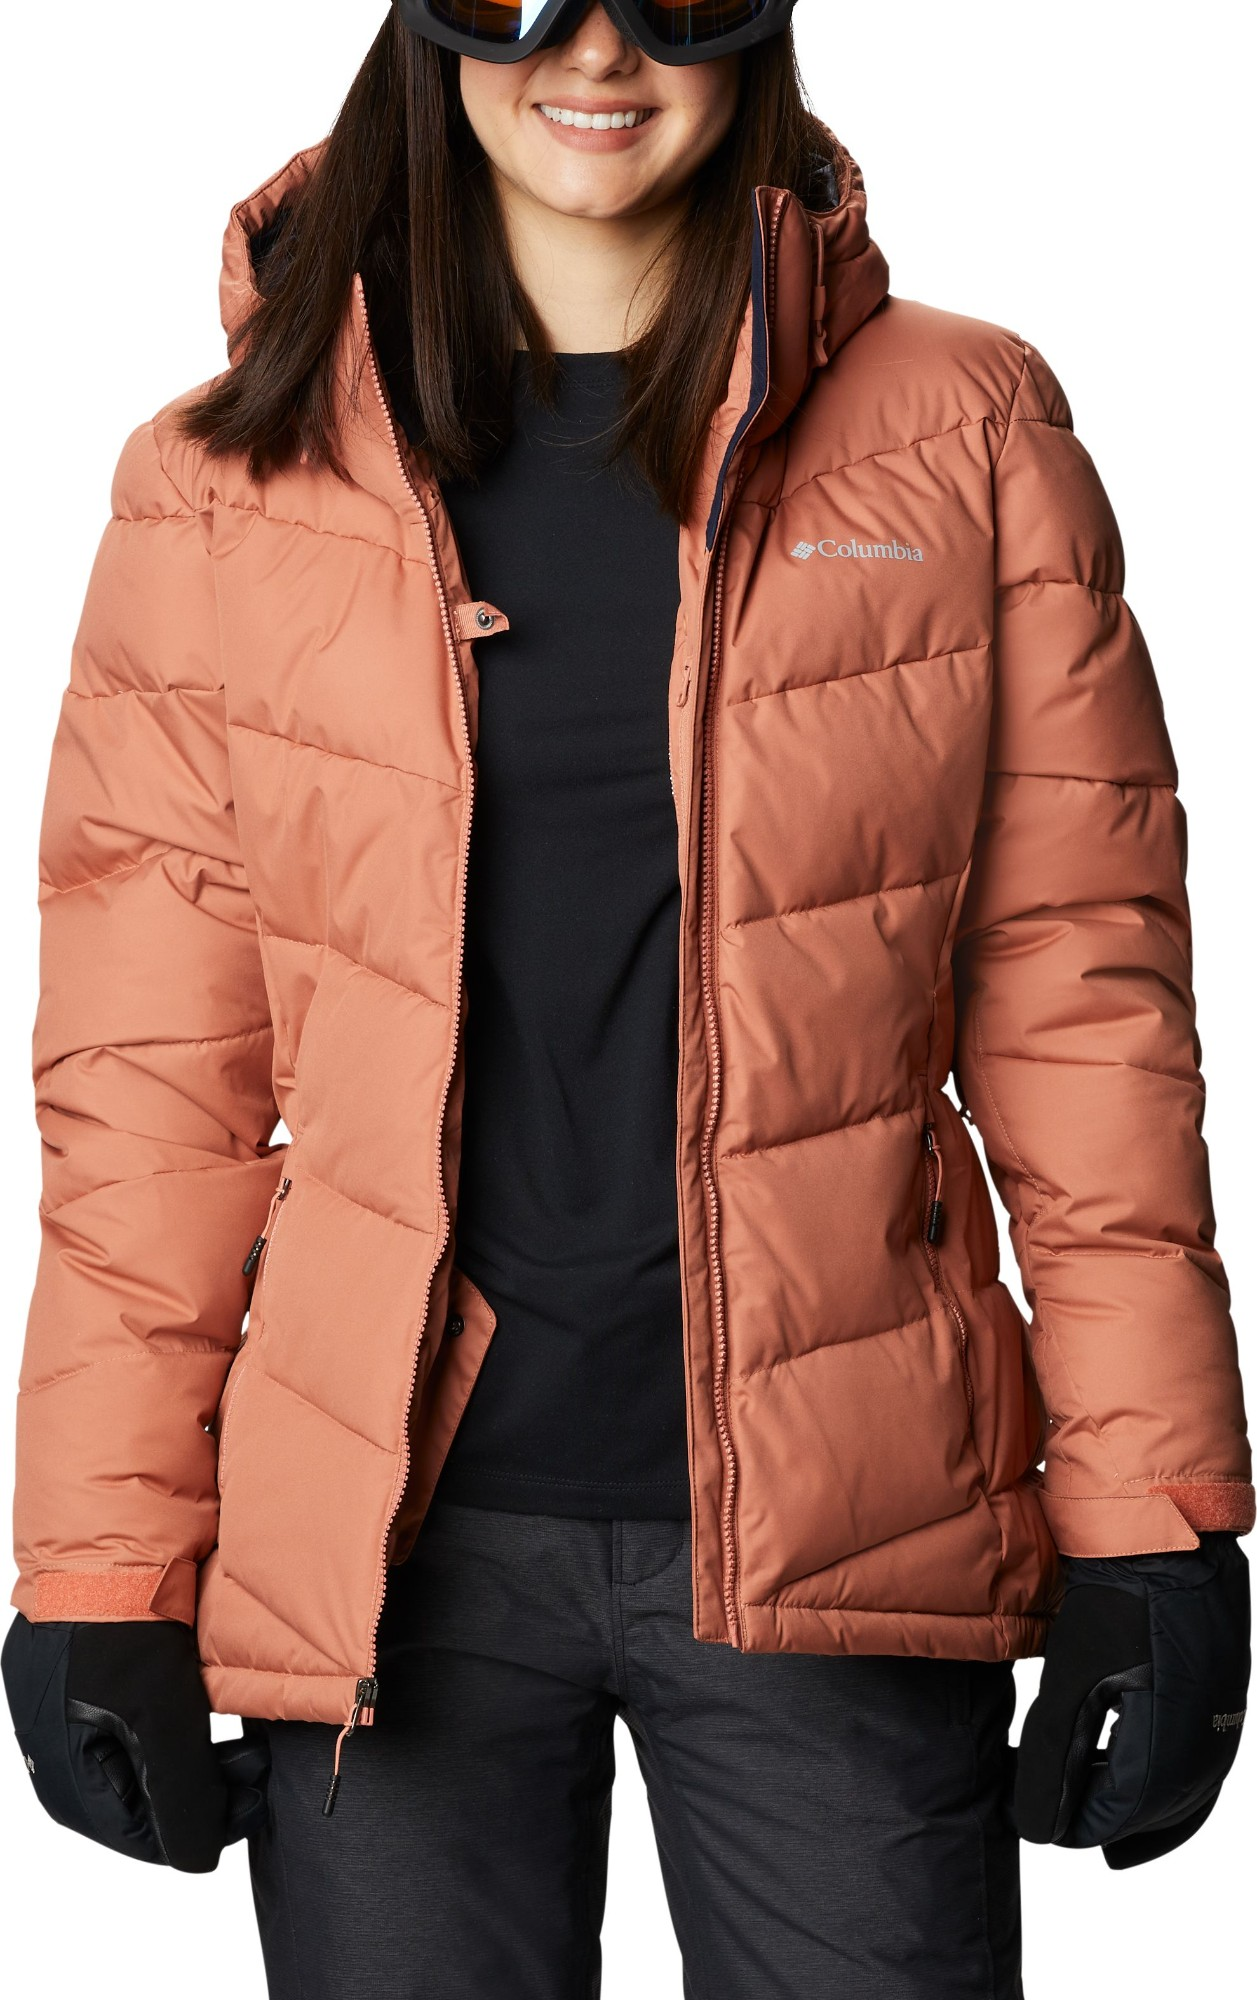 Columbia Abbott Peak Insulated Jacket Women's Nova Pink S